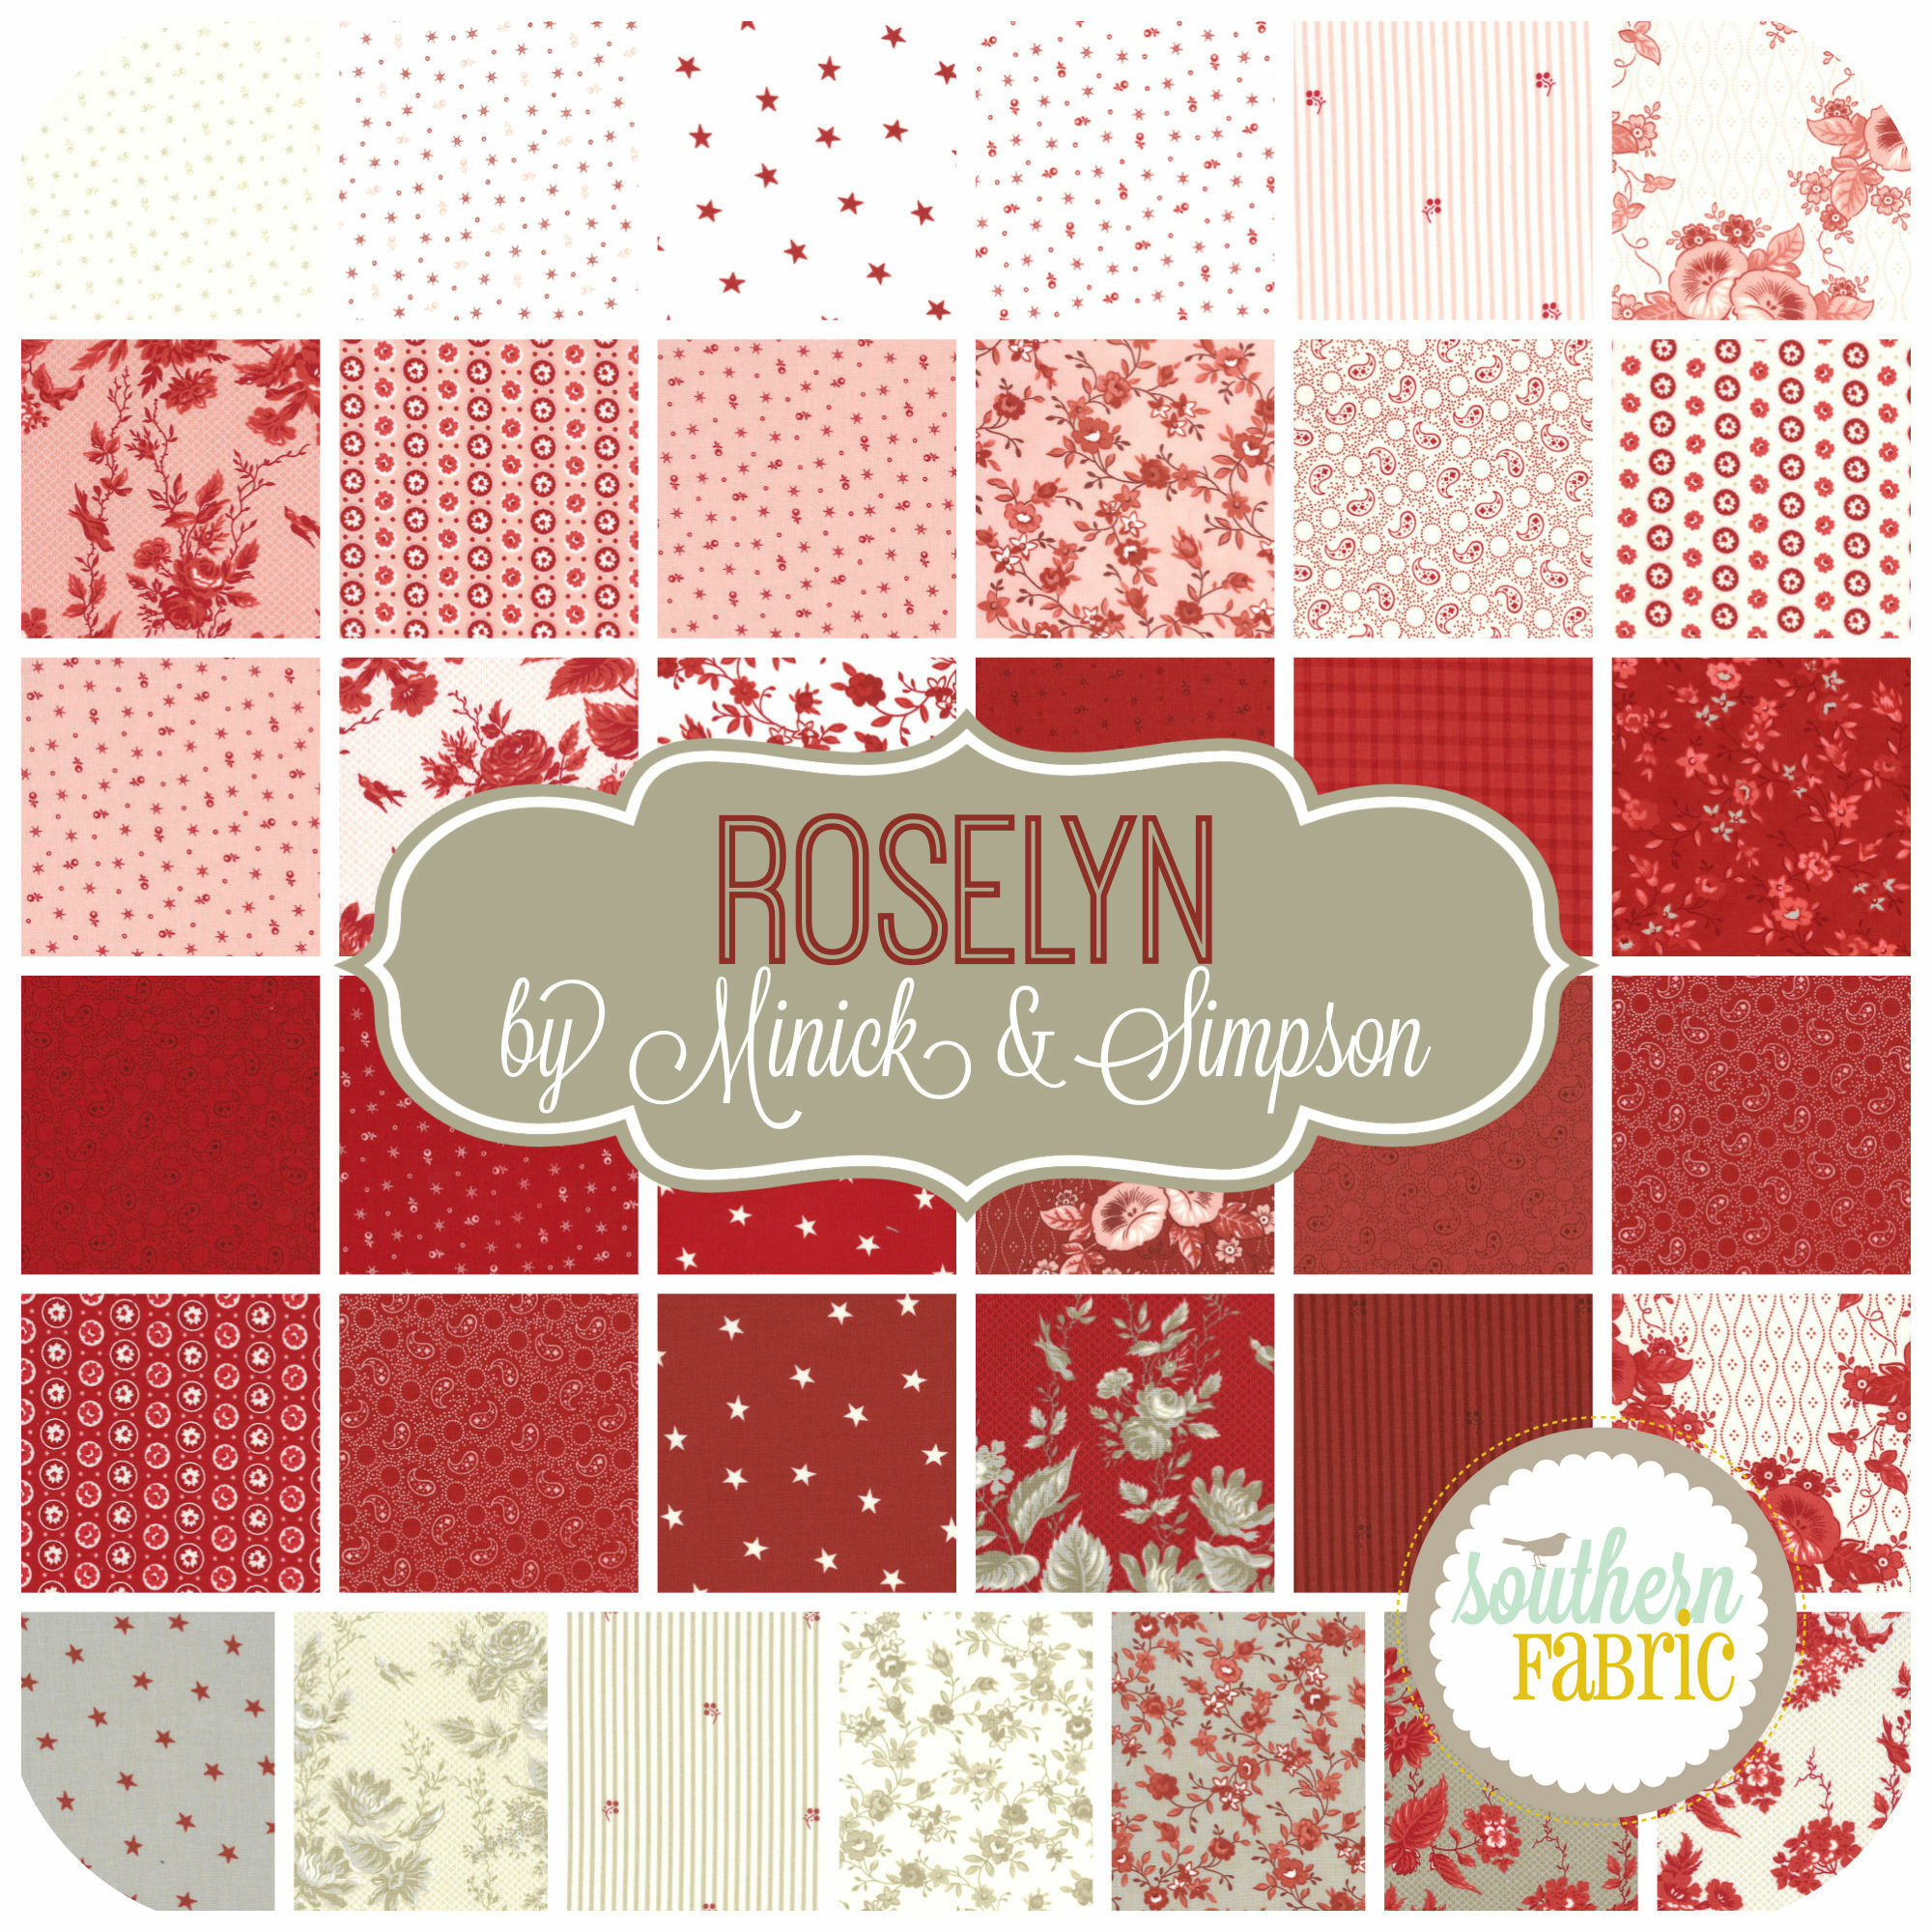 Roselyn by Minick and Simpson